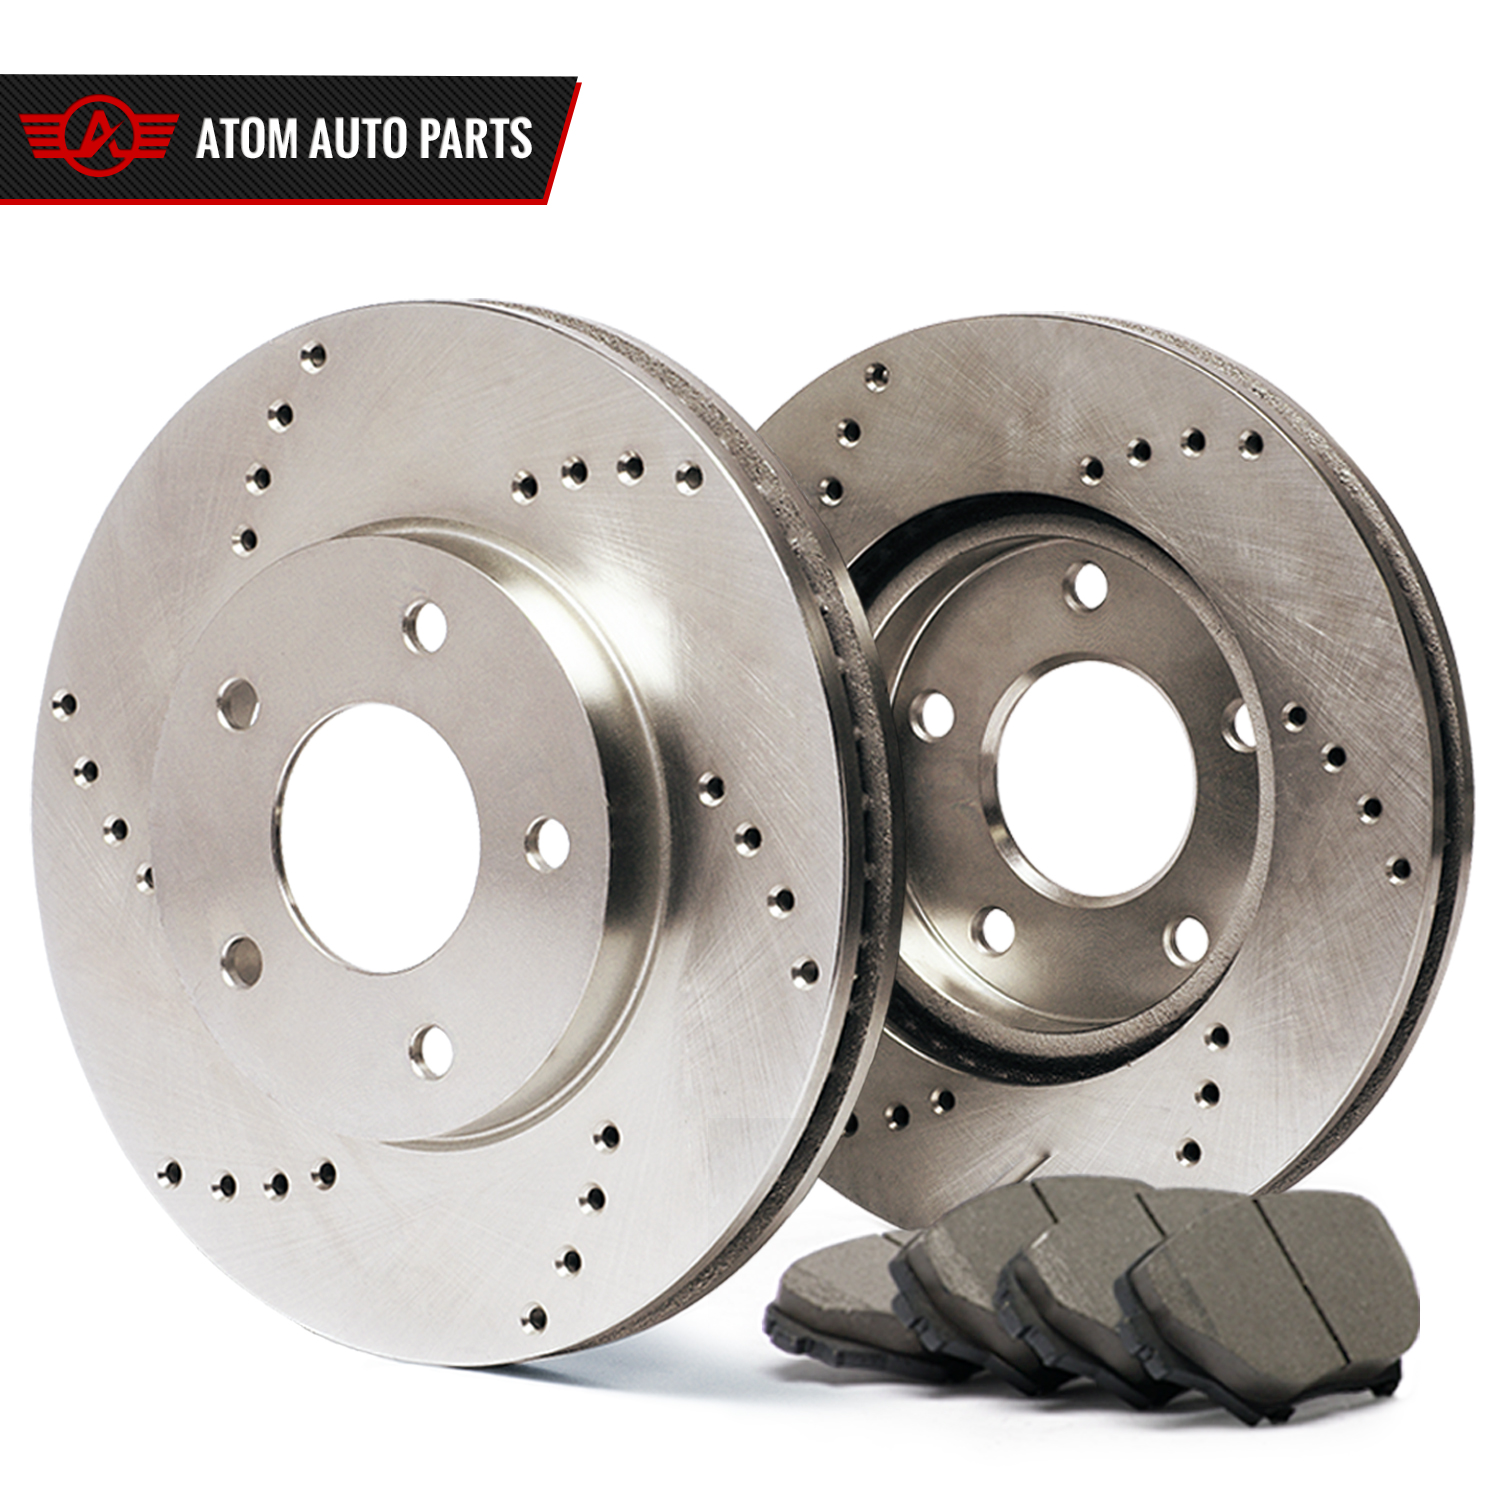 2008-Suzuki-SX4-w-Rear-Disc-Brakes-Cross-Drilled-Rotors-Ceramic-Pads-R